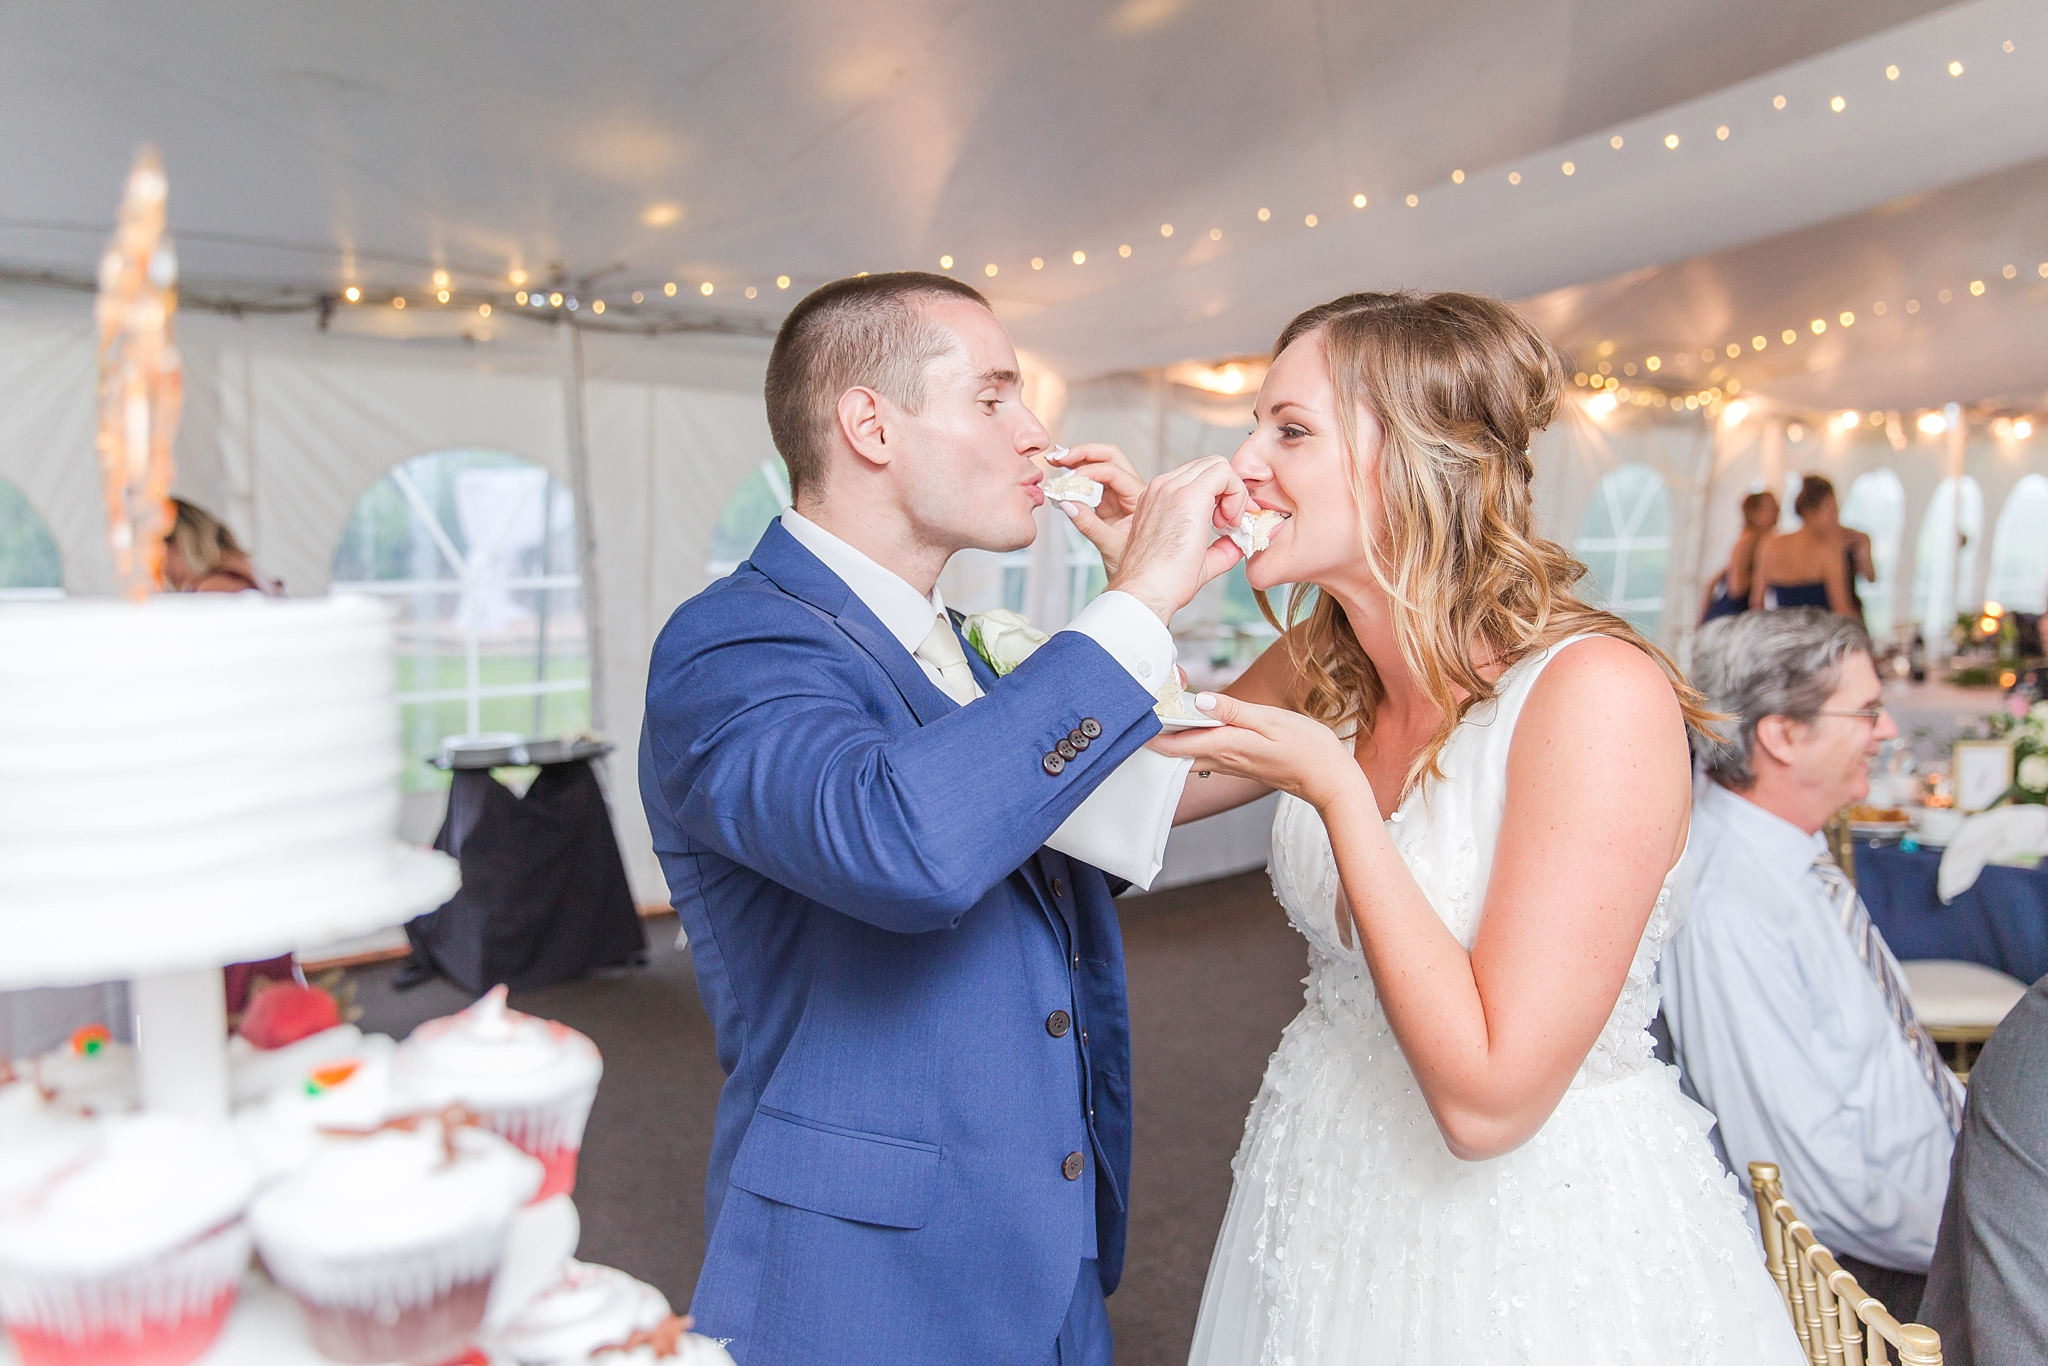 joyful-candid-laid-back-wedding-photos-in-ann-arbor-michigan-and-at-the-eagle-crest-golf-resort-by-courtney-carolyn-photography_0110.jpg